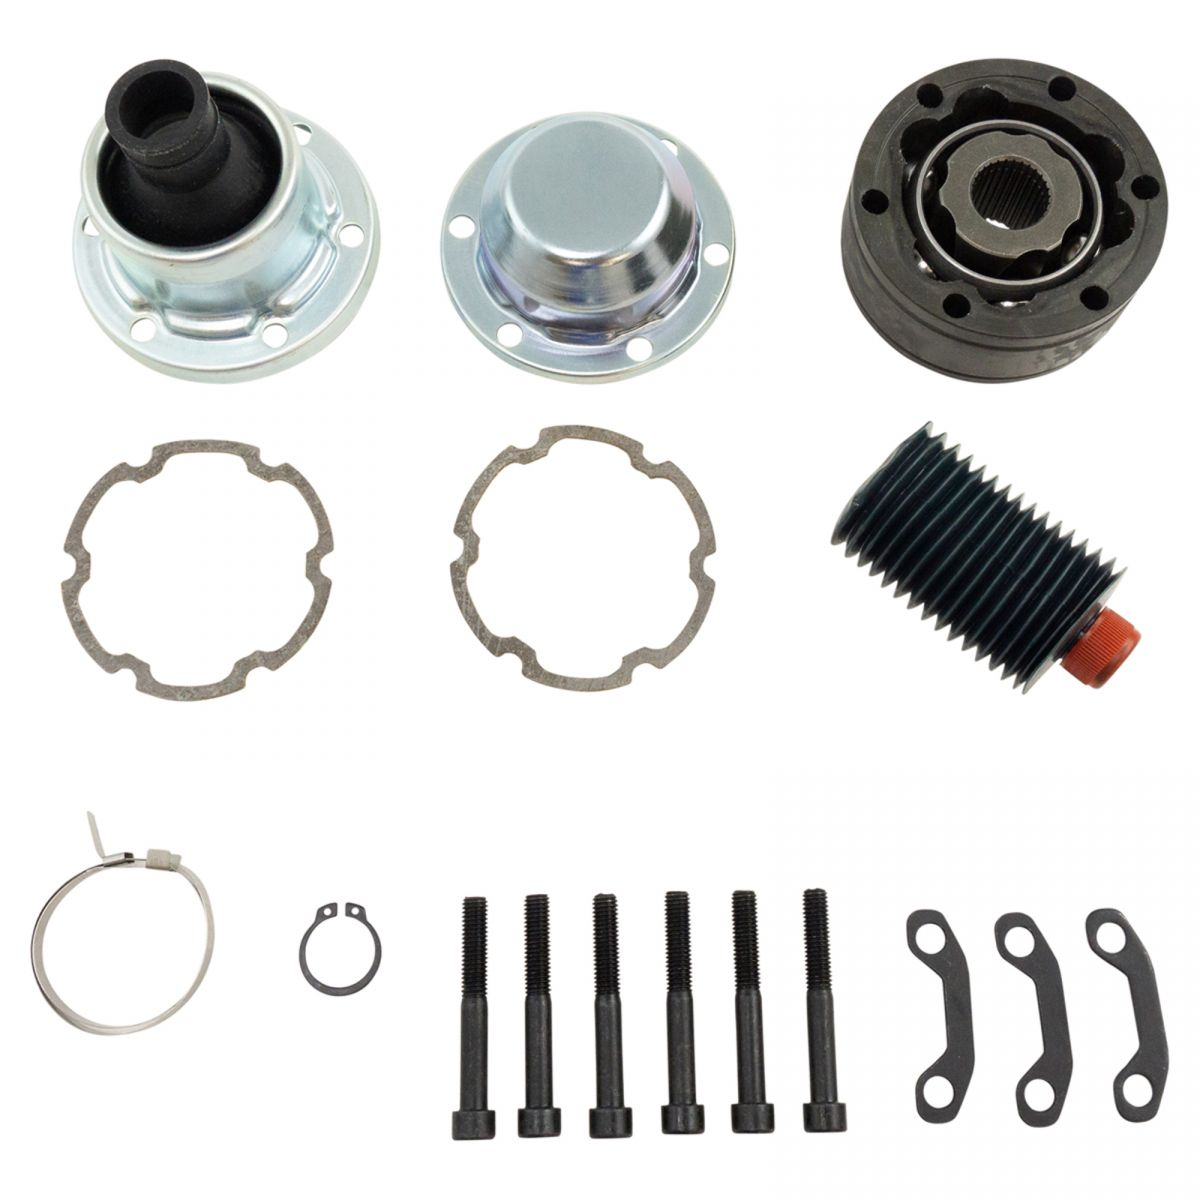 Rear Drive Prop Shaft High Speed CV Joint Forward Repair Kit for Equinox Terrain